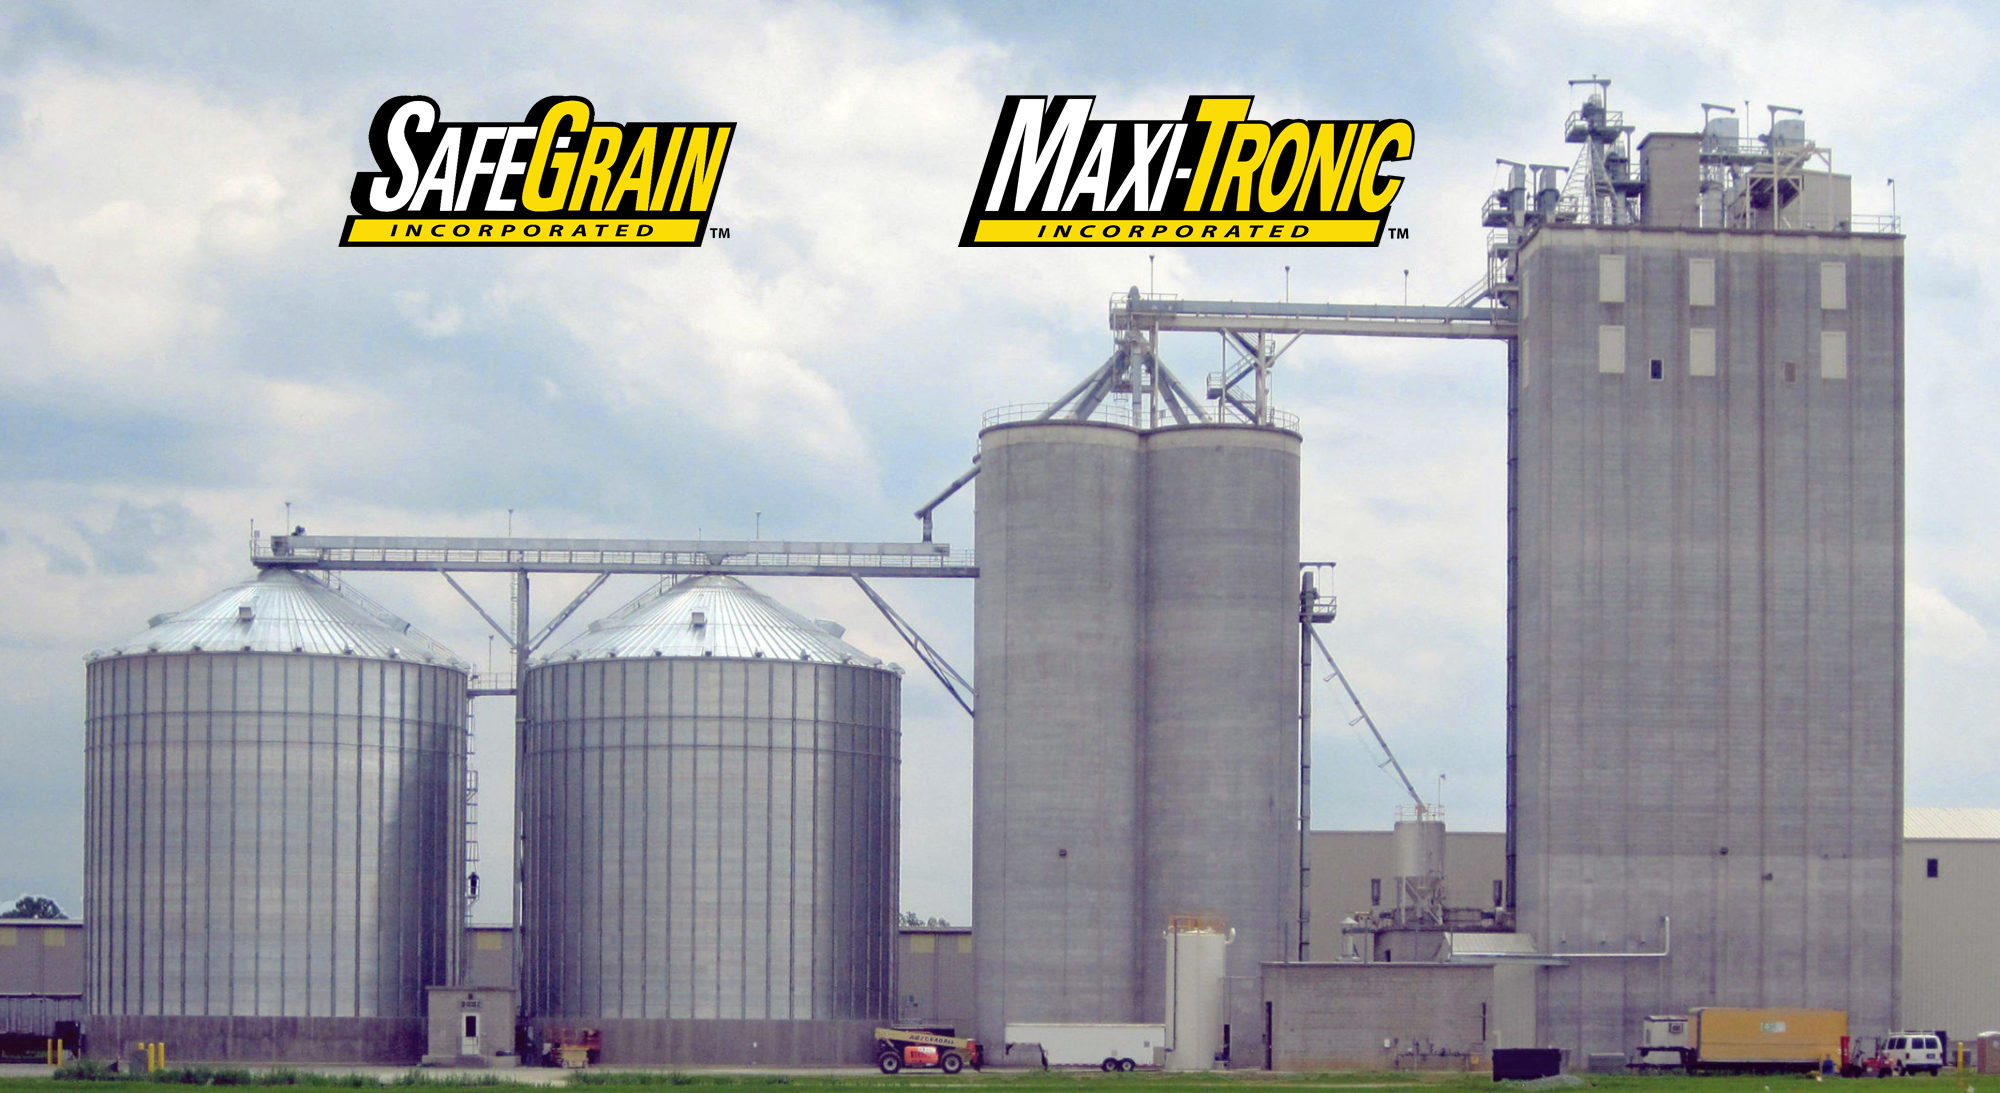 Safe-Grain, Inc. / Maxi-Tronic, Inc